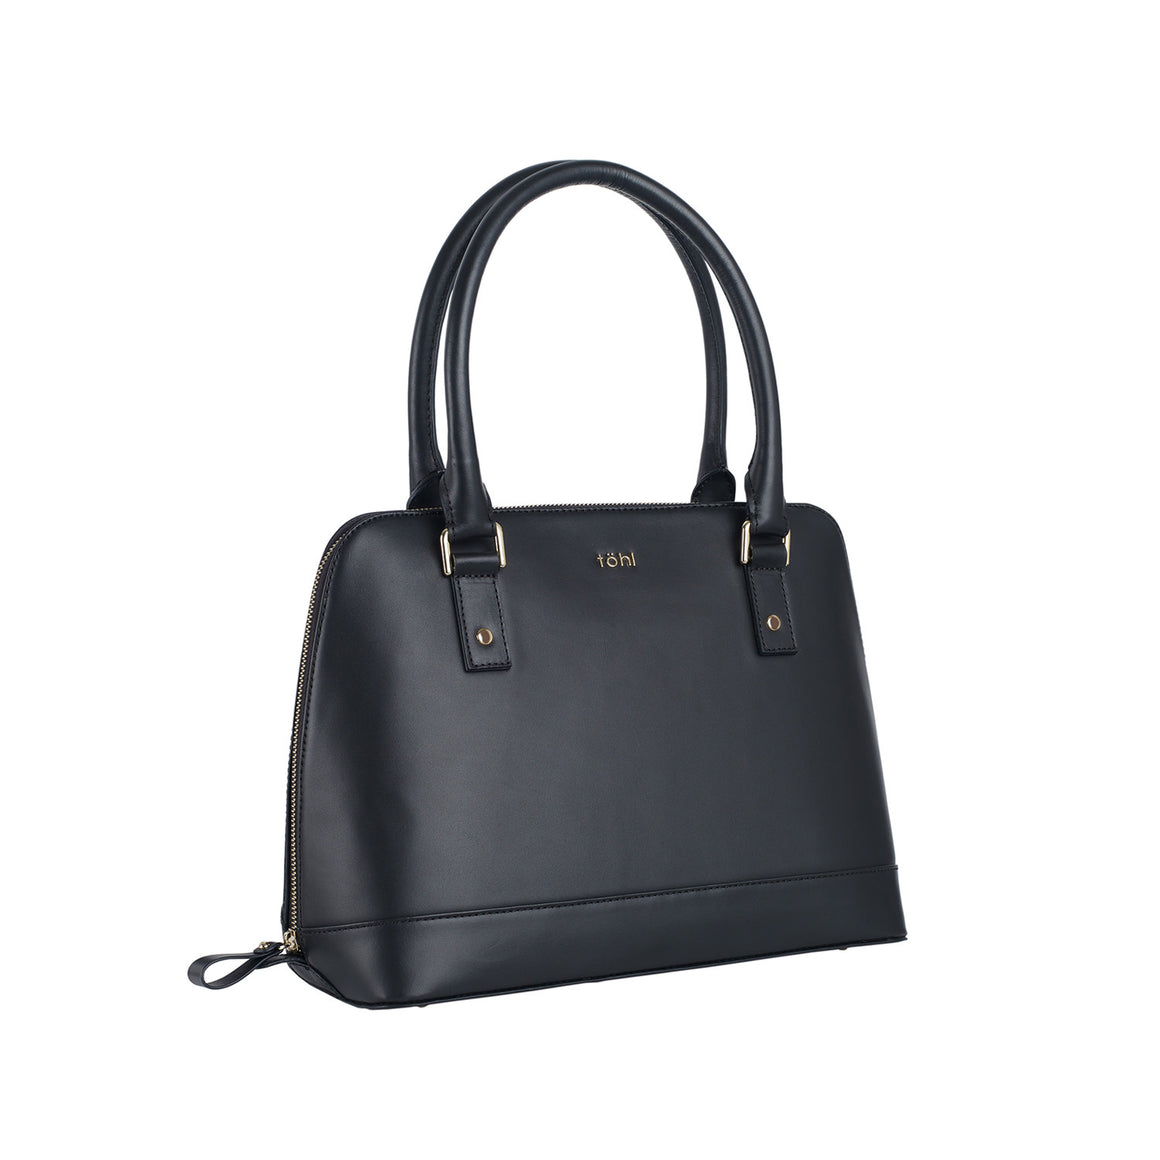 TT 0002 - TOHL RIDGE WOMEN'S SHOULDER BAG - CHARCOAL BLACK